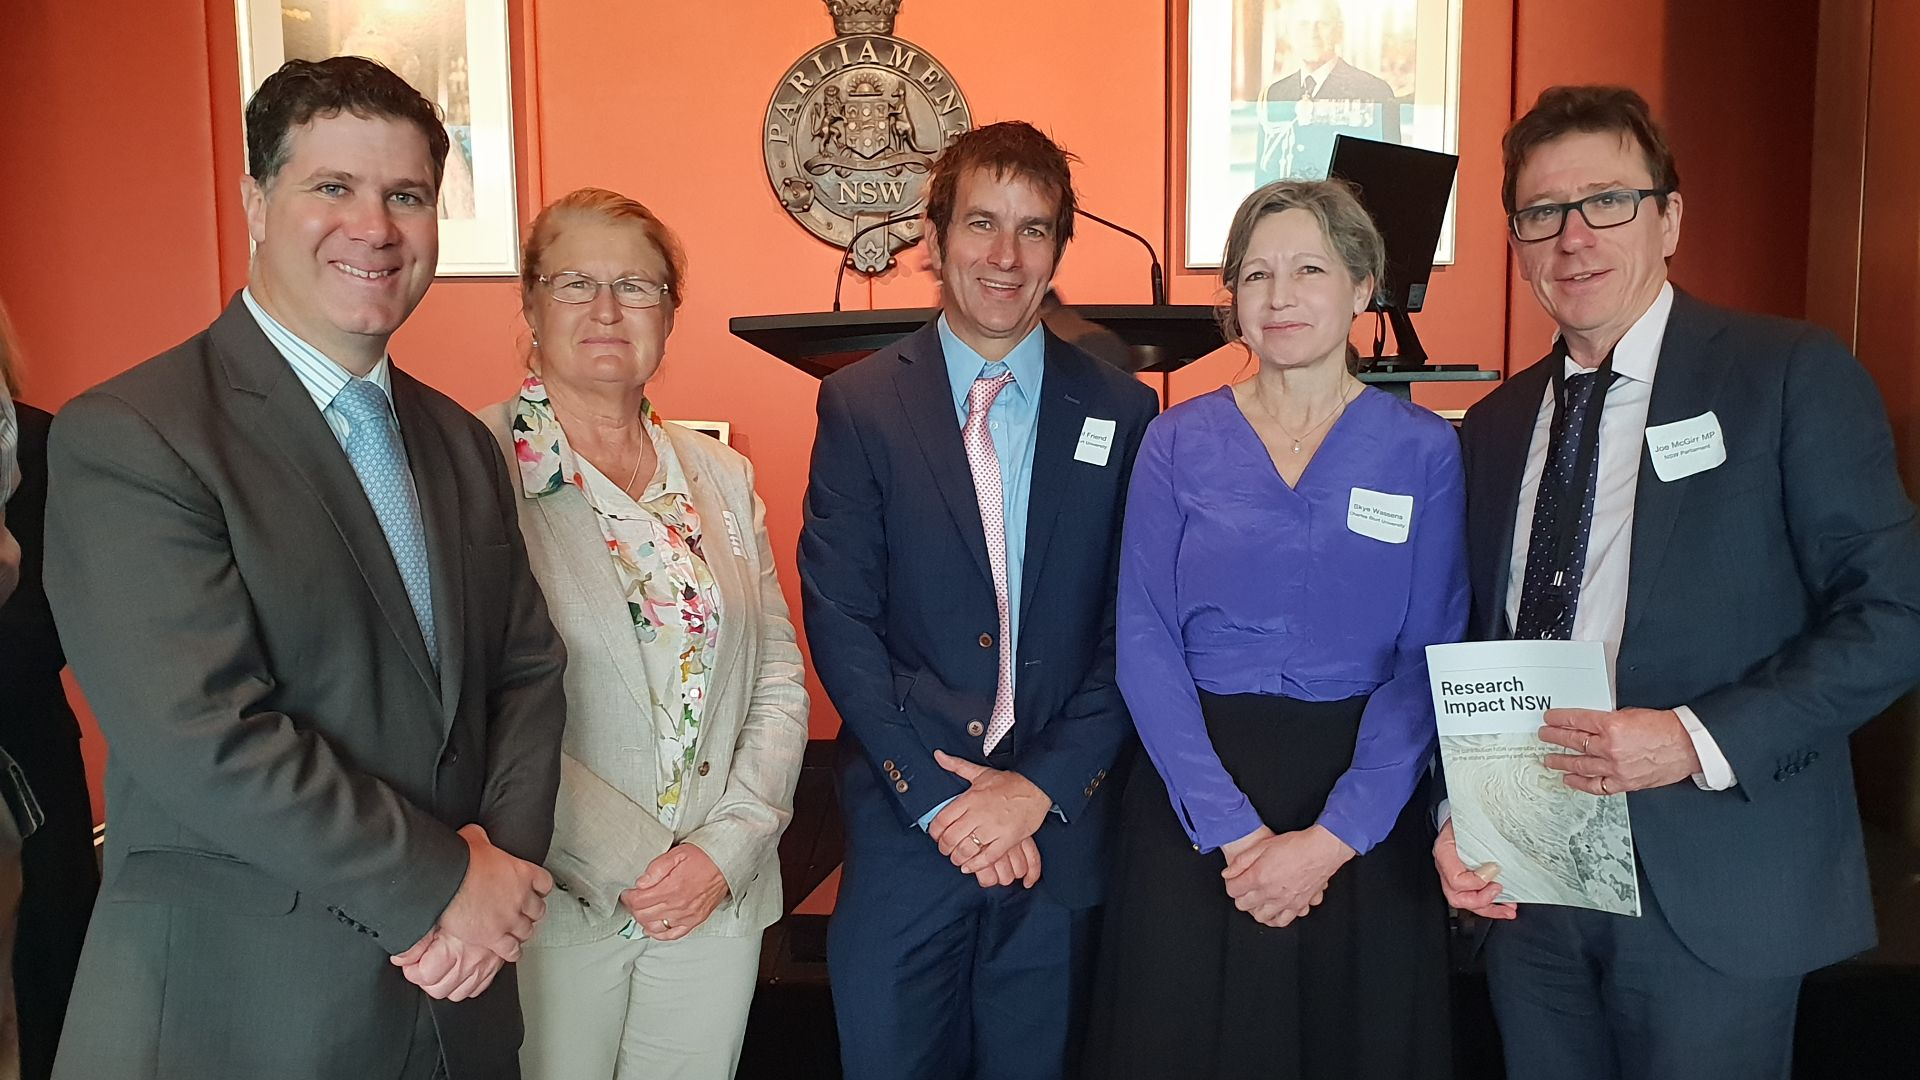 Charles Sturt research featured at inaugural showcase to Parliament